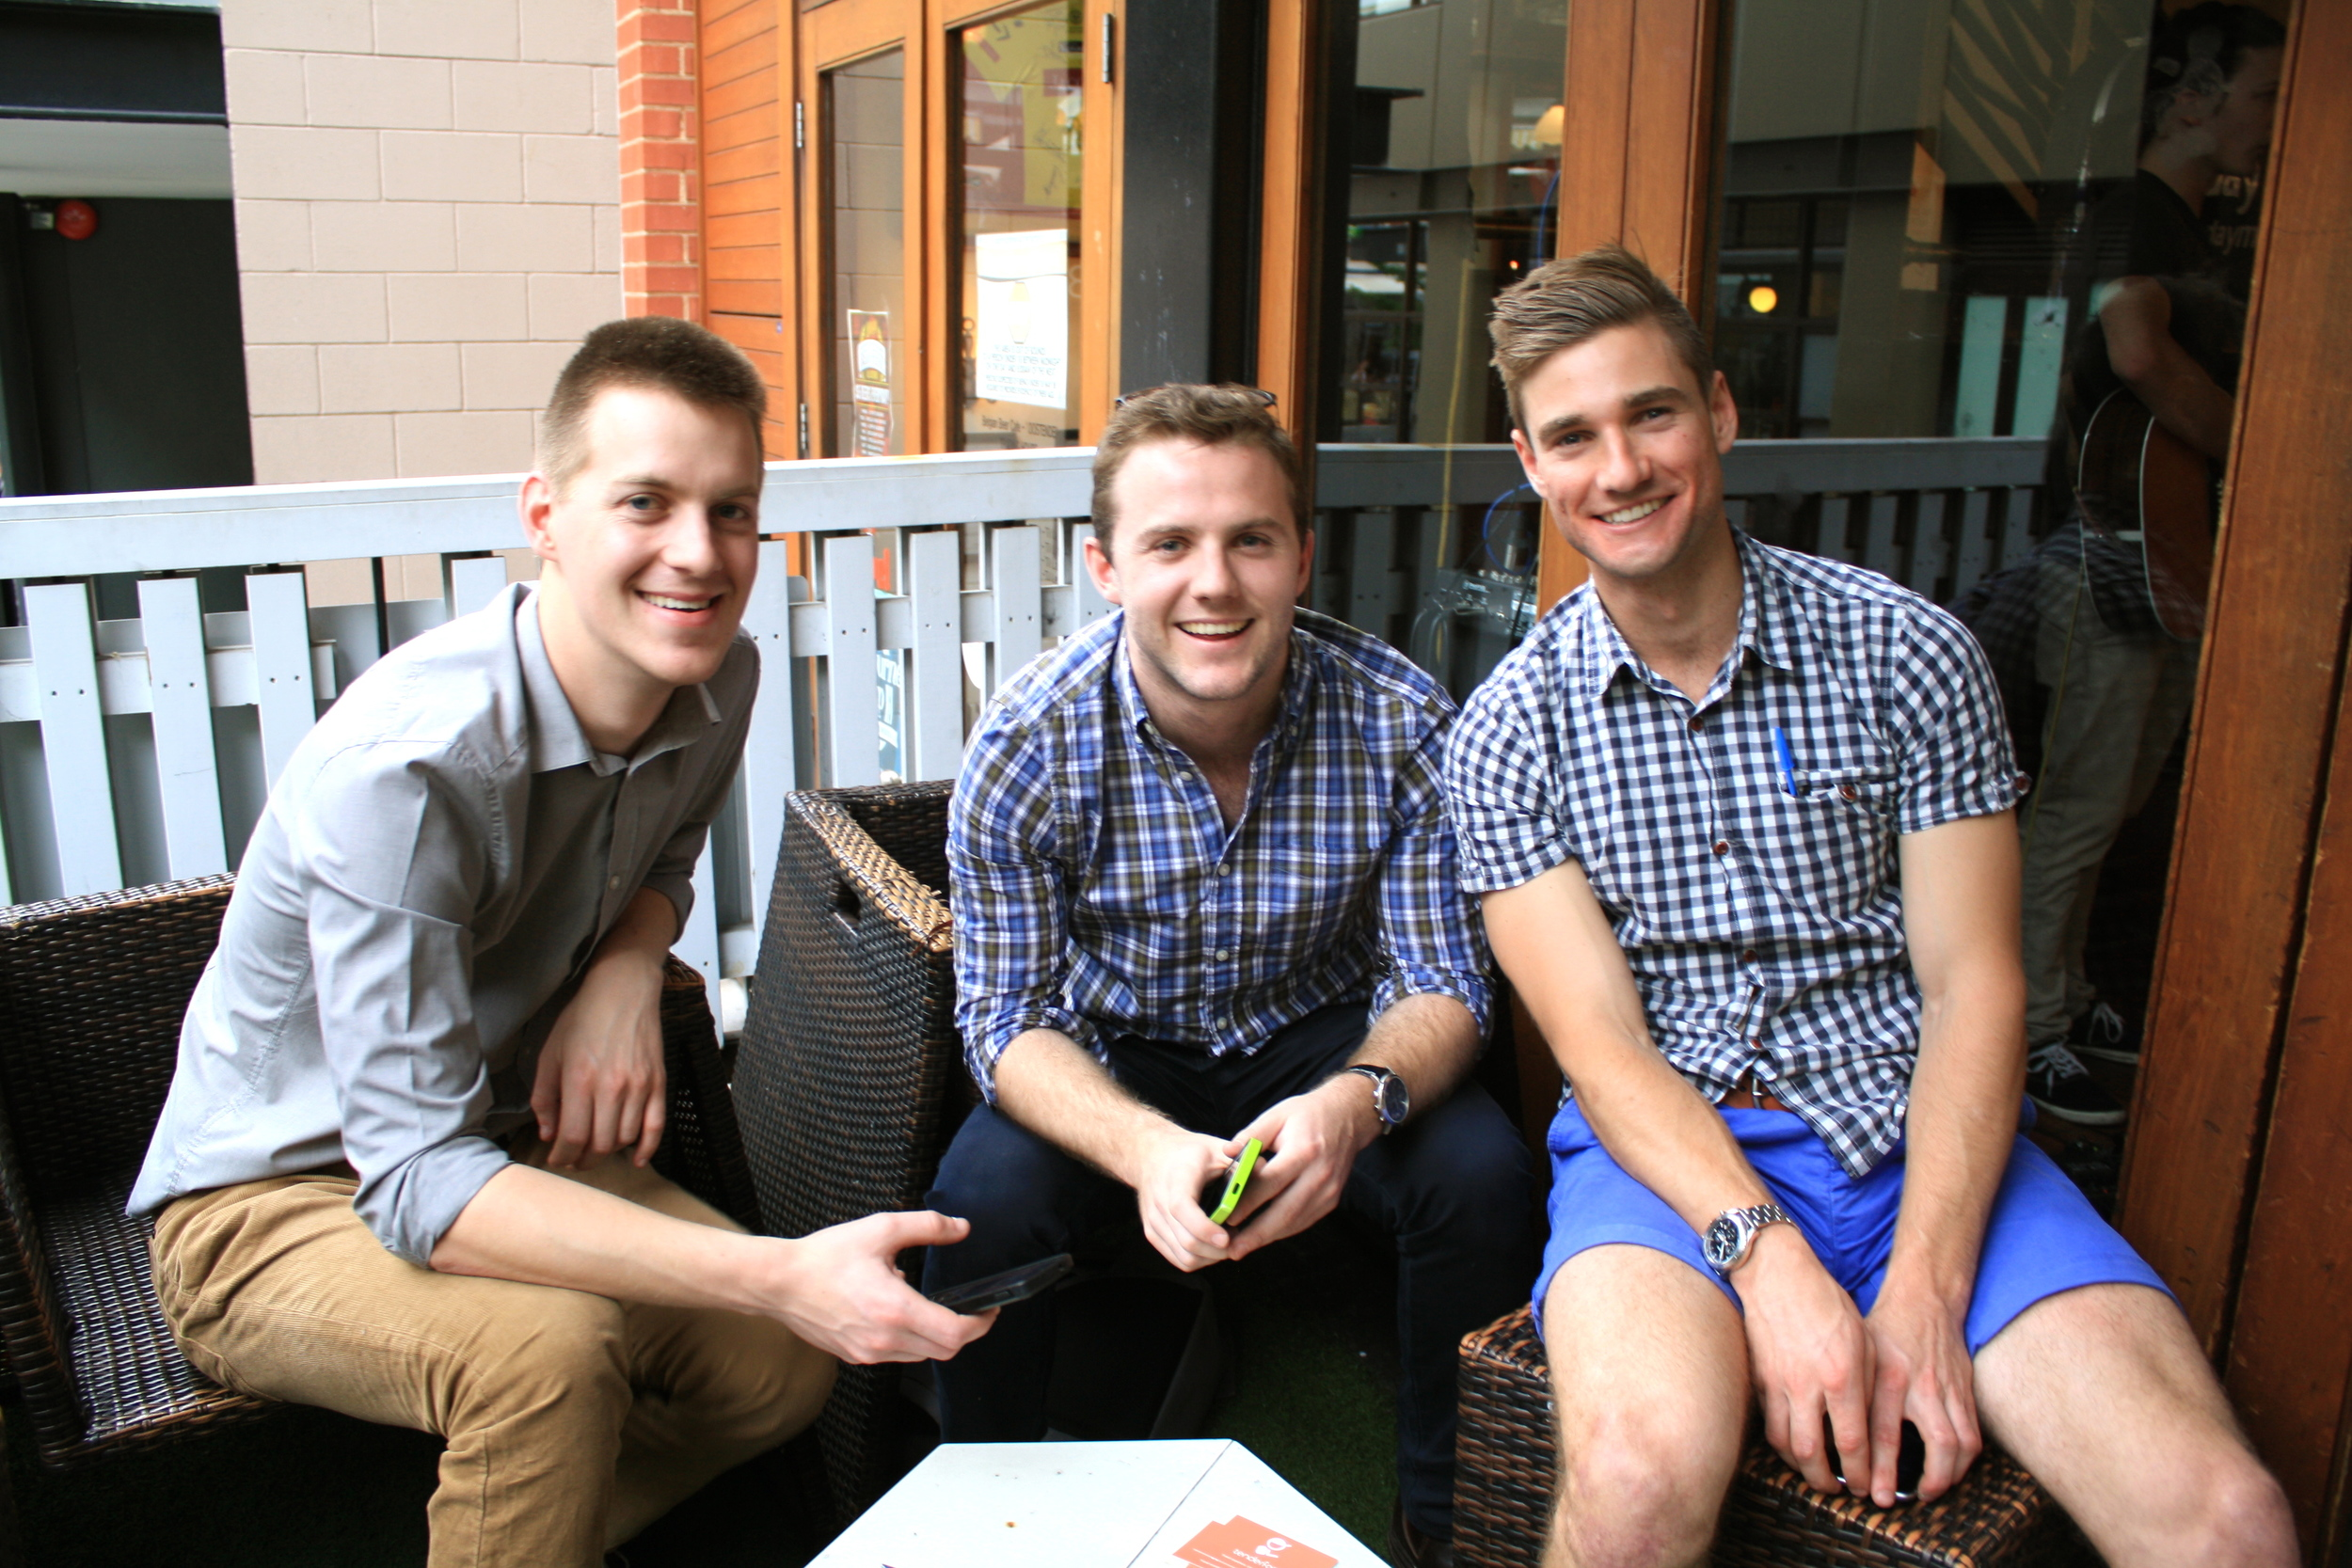 (left) Mitch, Lucas and Charles